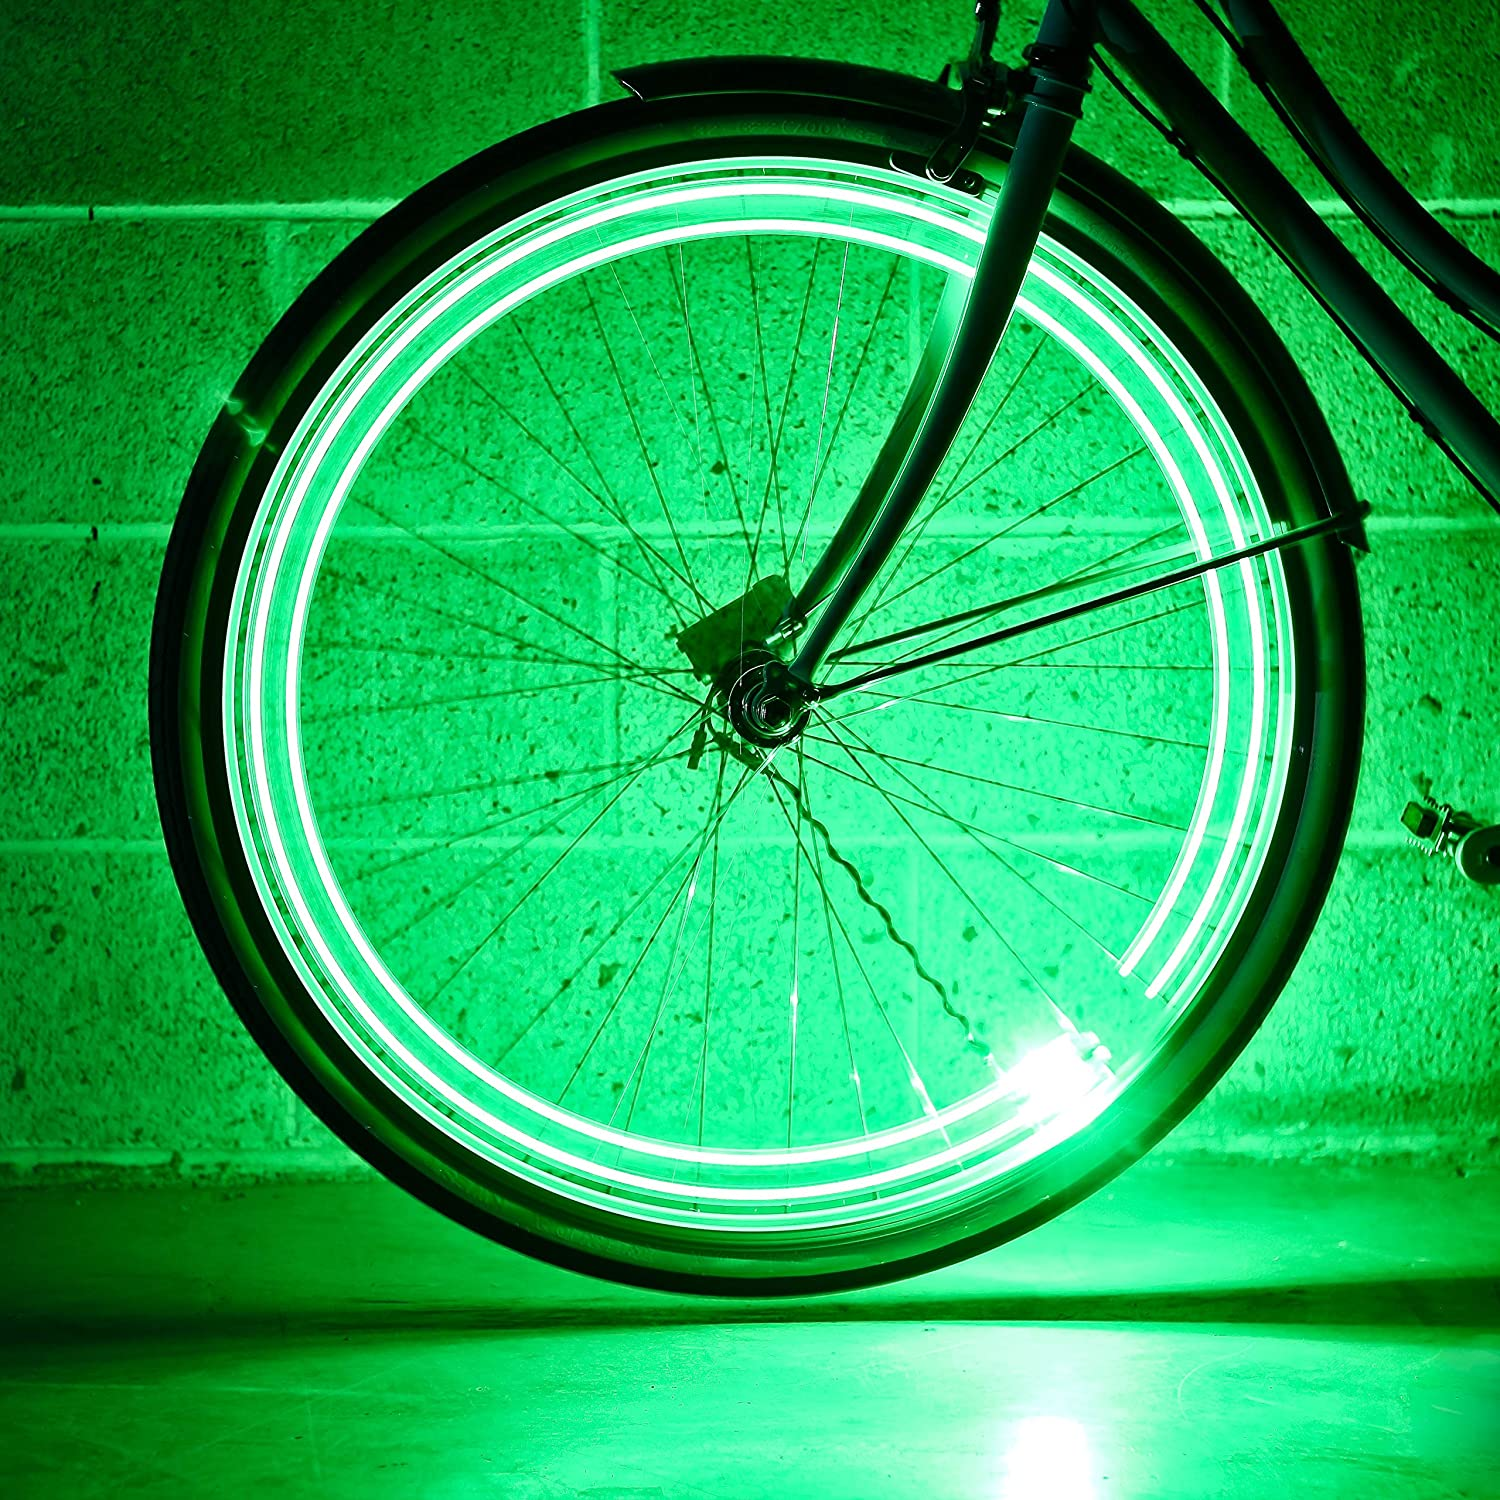 Monkey Light A15 Automatic Bicycle Wheel Light, Multicolor LED Lights for Bicycle Wheels, Attaches to Bike Spokes Near The Tire. Colors Change with Your Speed, Ultra-Durable and Waterproof. 4 LEDs